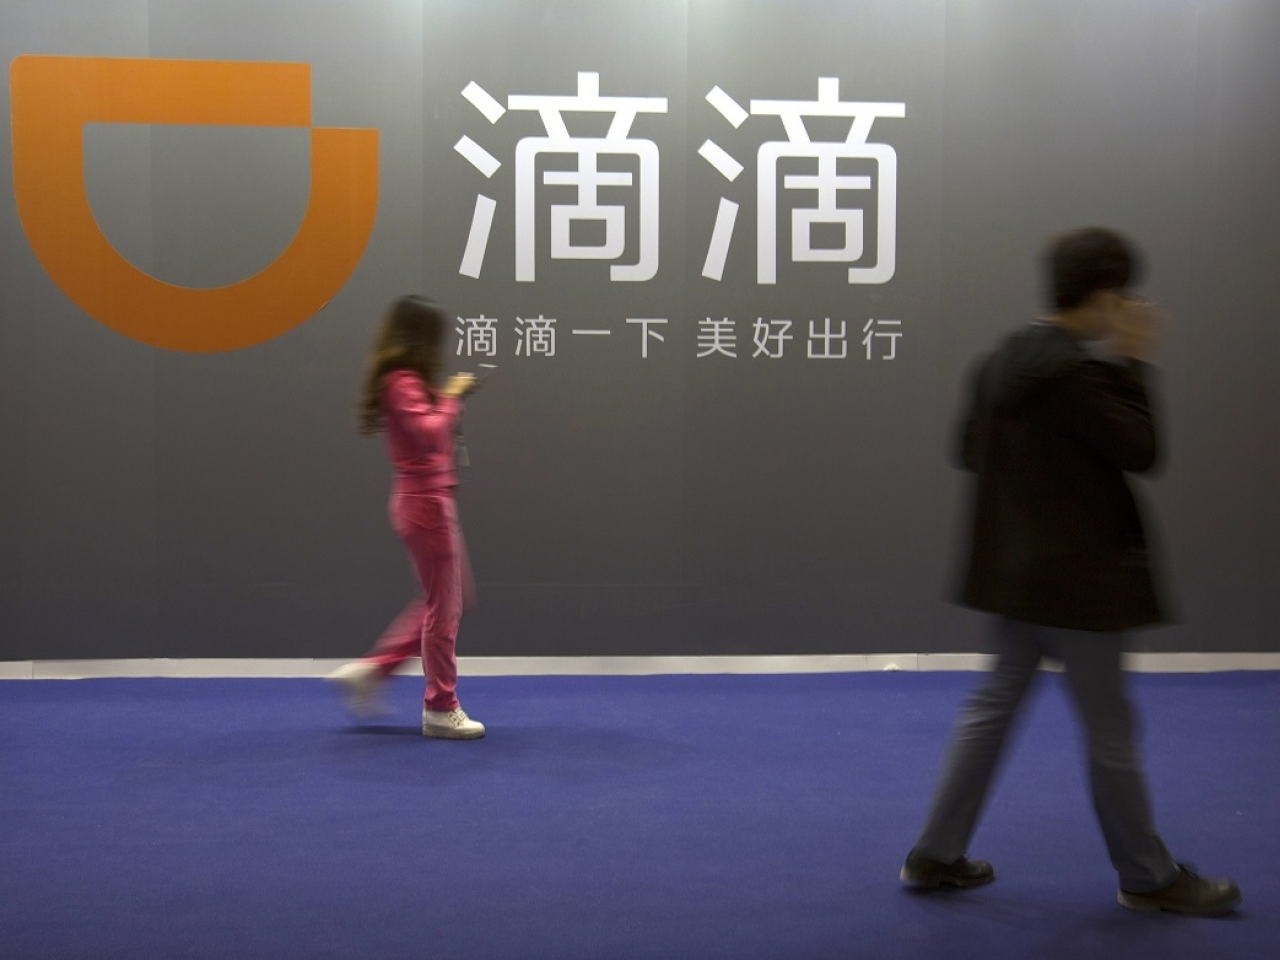 A member of the public walks past a sign for Didi Chuxing. File photo: AP